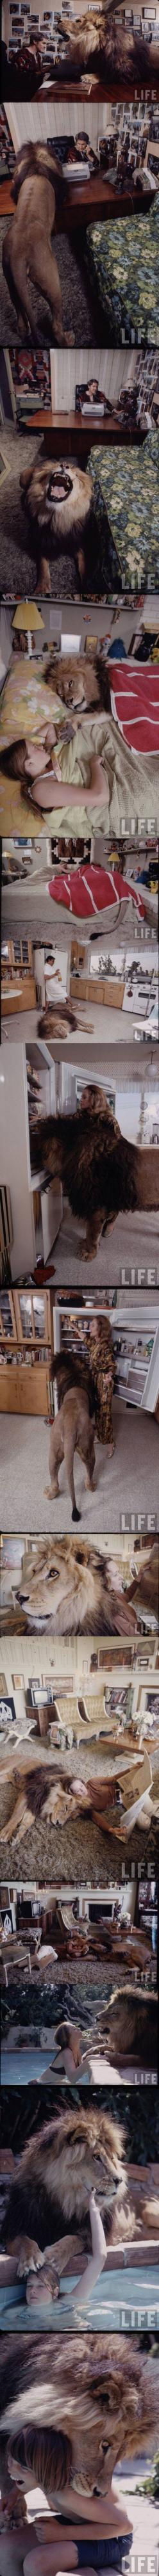 and it didn't eat them alive??  does that mean I can have a tiger? :D: Mojave Desert, Hendren Established, Animals, Cat, Melanie Griffith, Pet Lion, Dream, Shambala Preserve, Wildlife Sanctuary